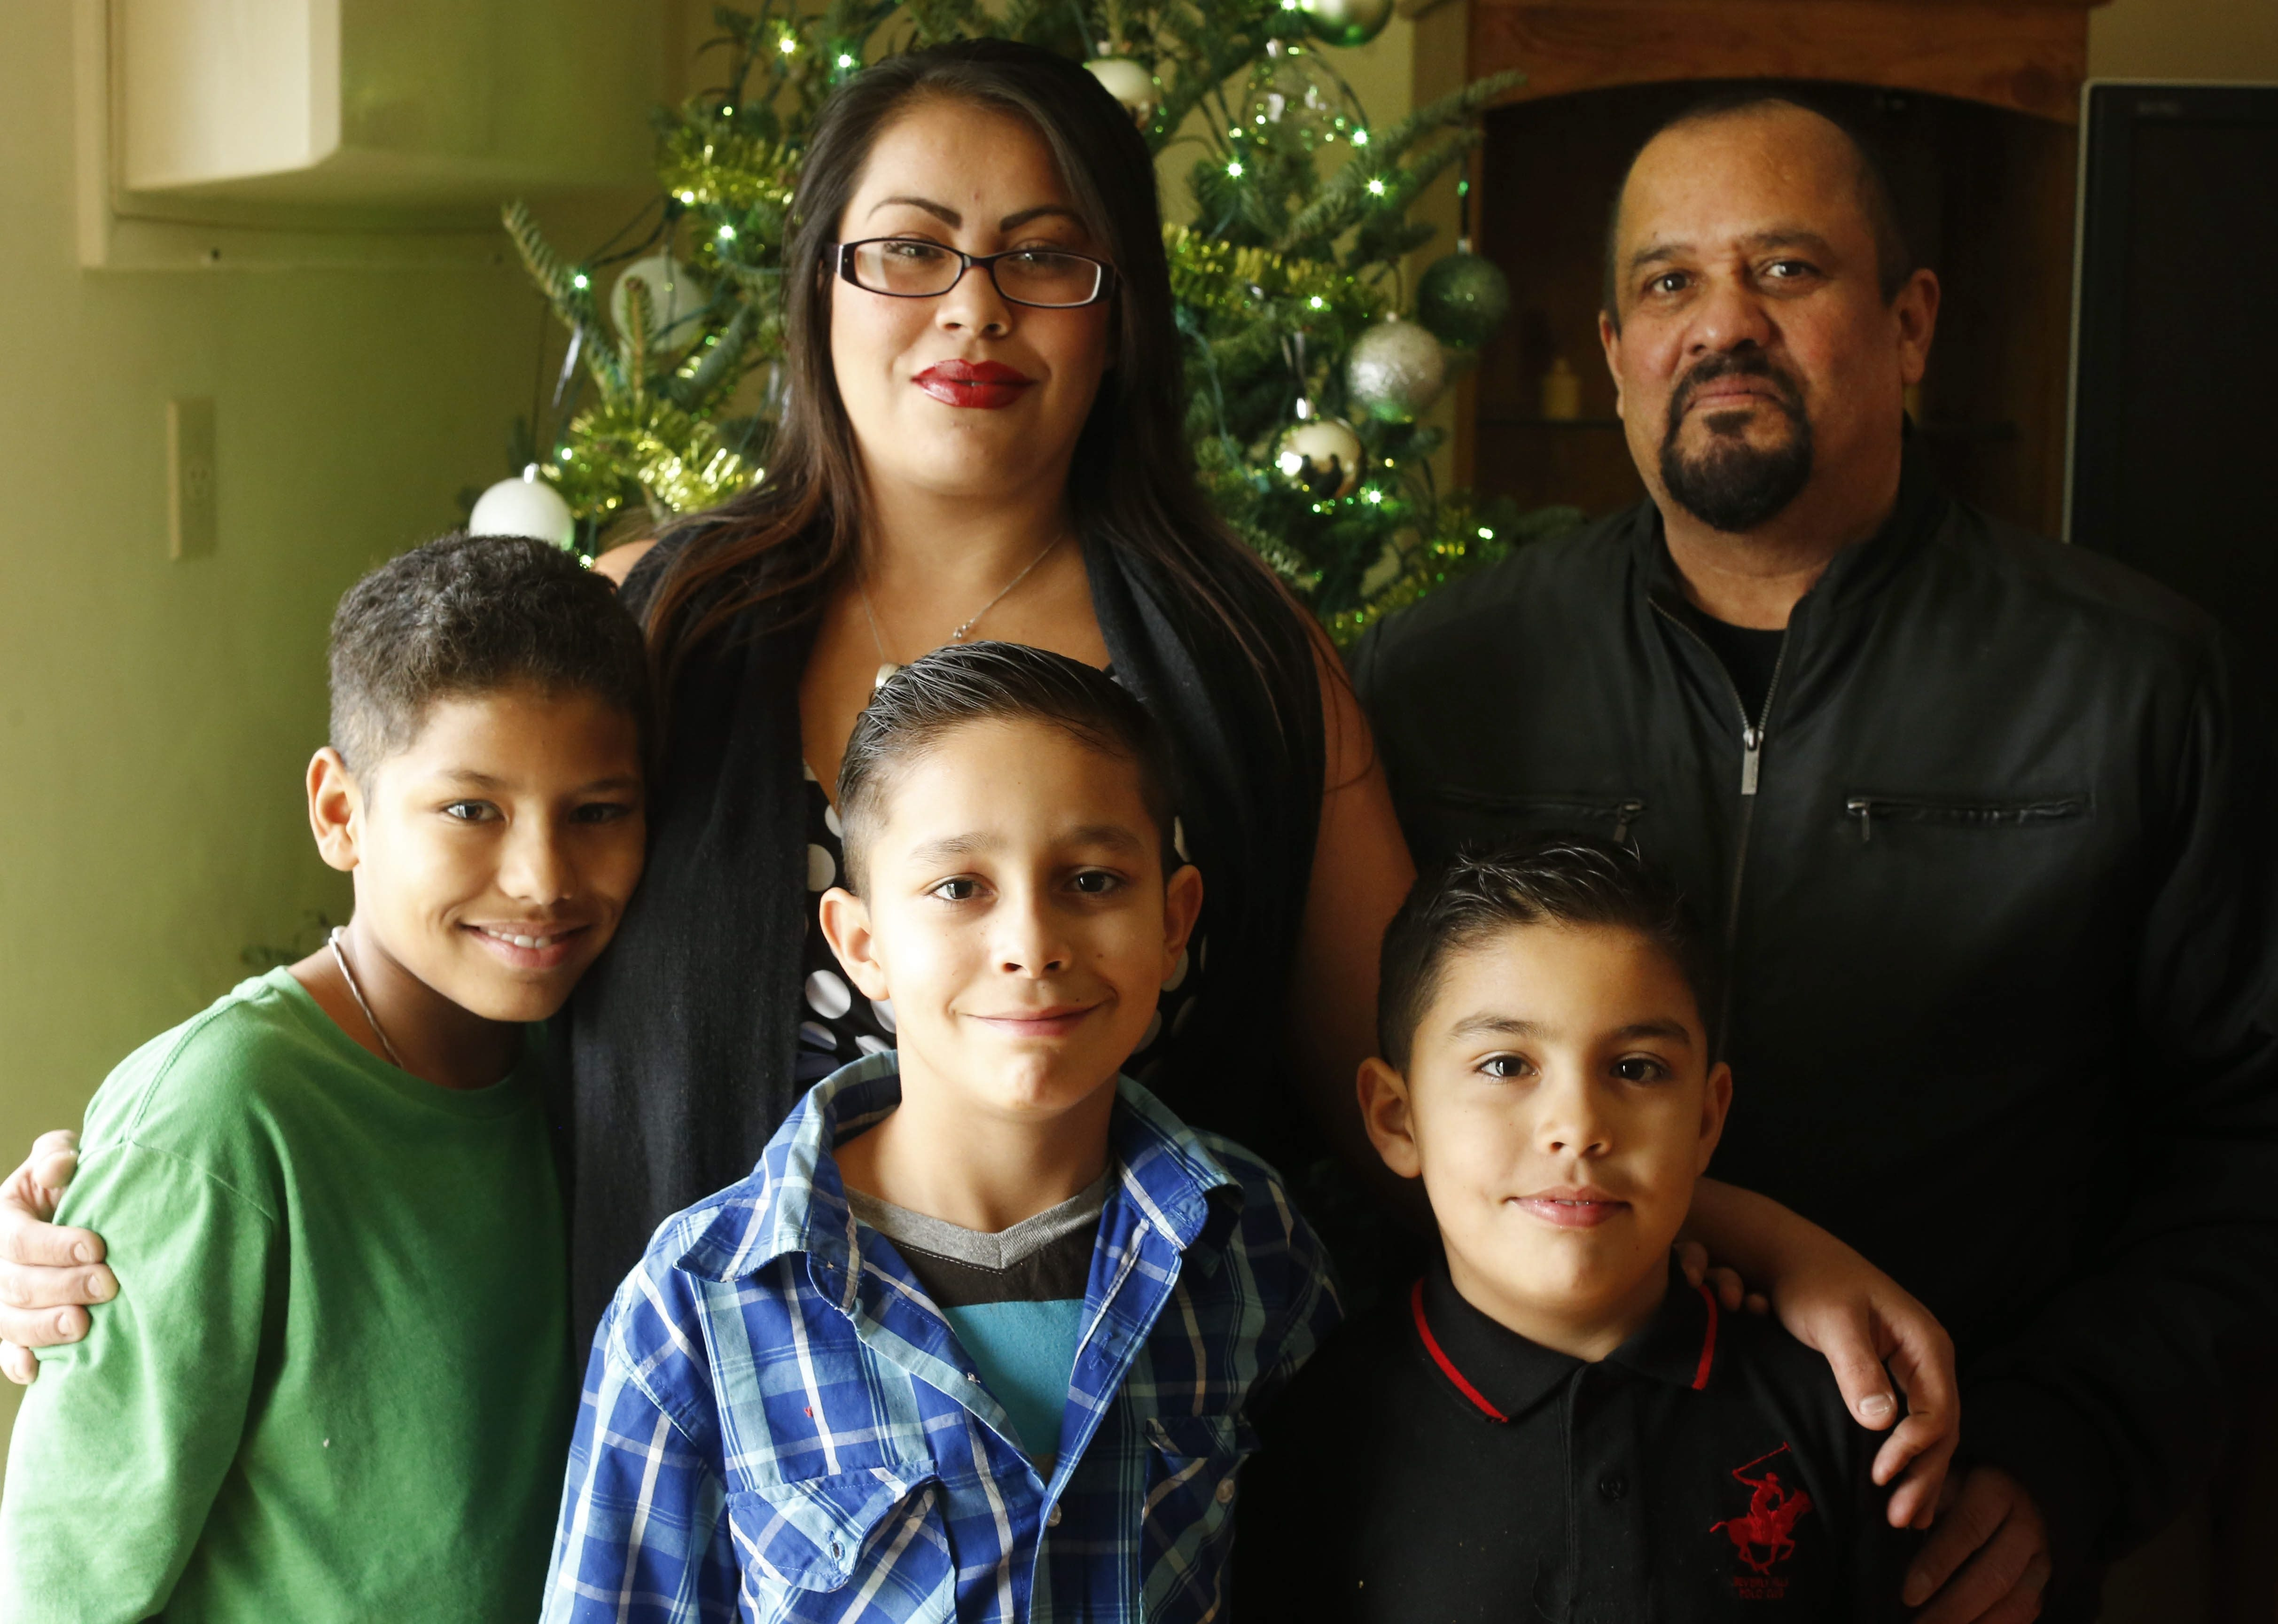 Benjamin and Michelle Galvan with their sons, Jayden, 12, Joshua, 10, and Benjamin Jr., 9, are ready to celebrate Christmas in their Depew apartment.